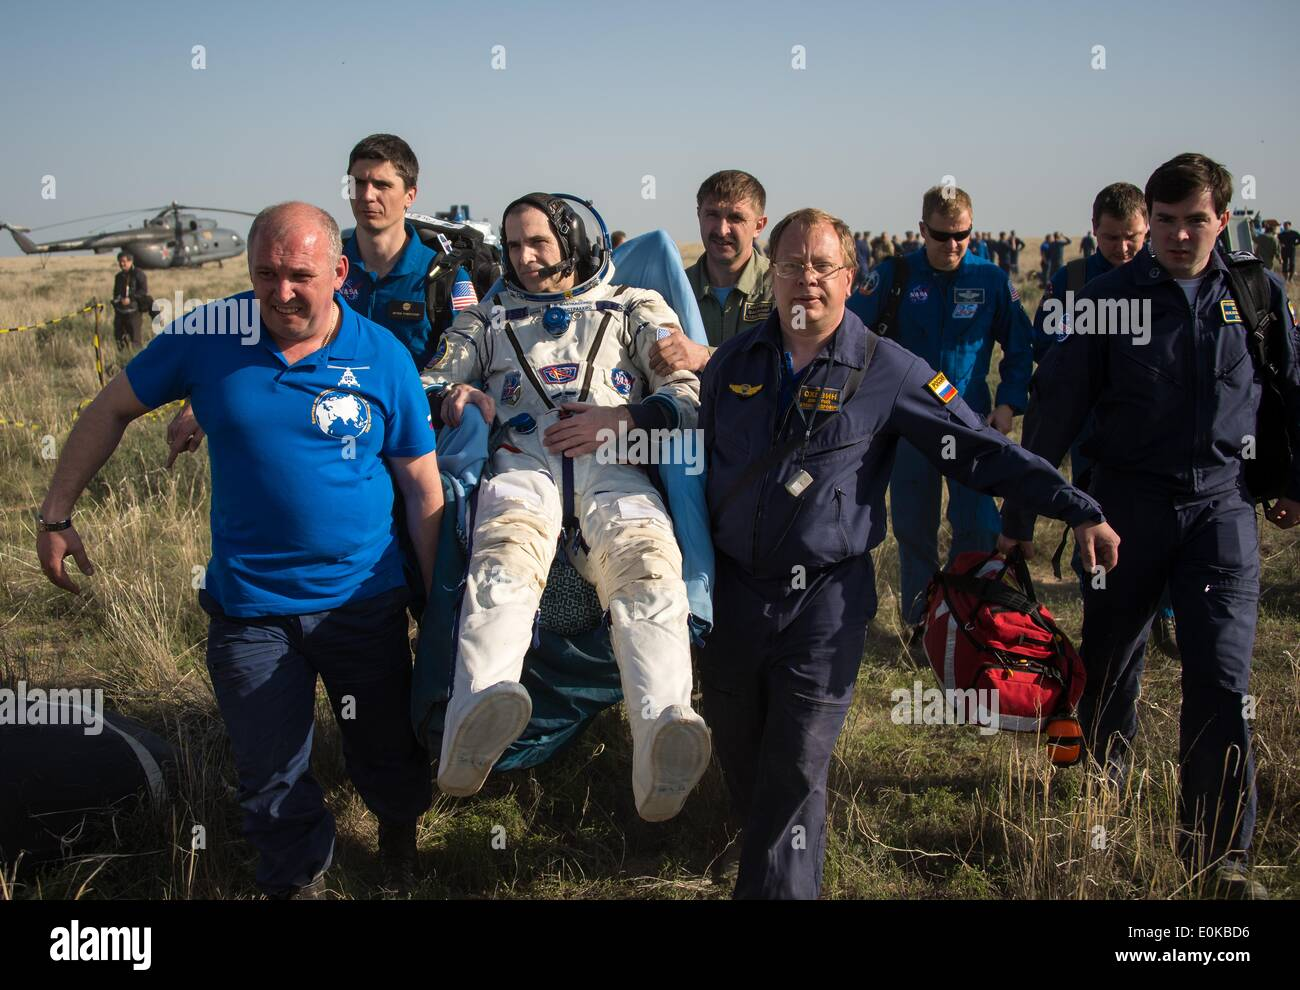 ISS Expedition 39 Flight Engineer Rick Mastracchio of NASA is carried in a chair to the medical tent just minutes after landing with fellow expedition crew members in the Soyuz TMA-11M spacecraft May 14, 2014 near the town of Zhezkazgan, Kazakhstan. Wakata, Tyurin and Mastracchio returned to Earth after more than six months onboard the International Space Station where they served as members of the Expedition 38 and 39 crews. - Stock Image